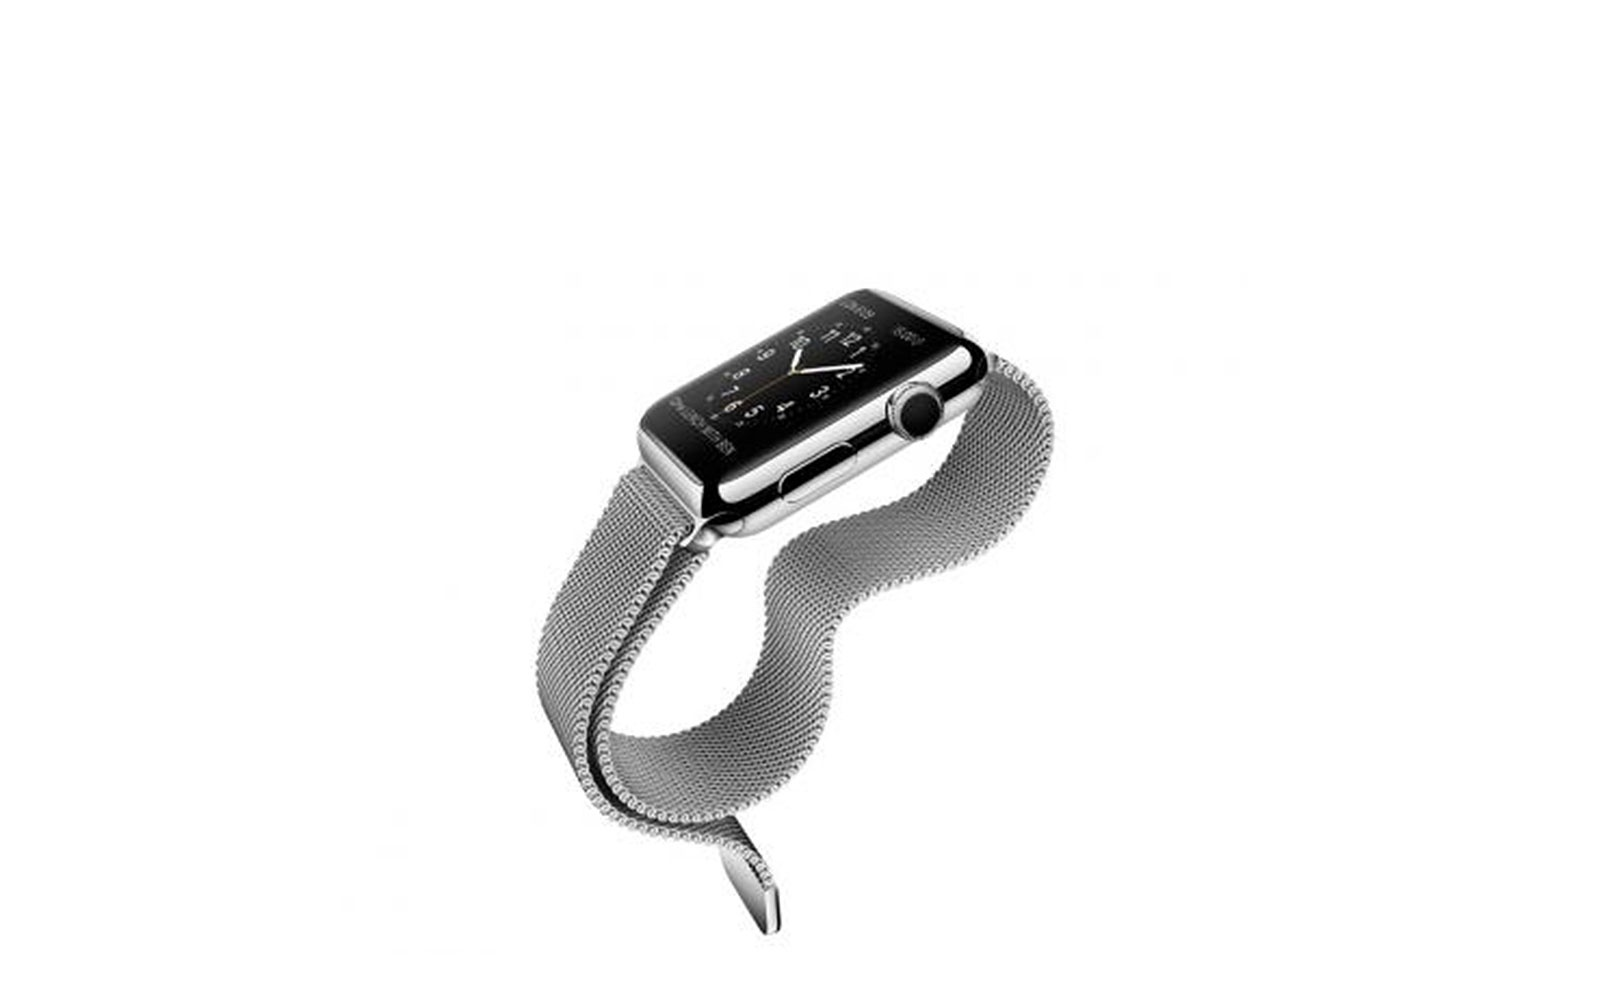 Apple Watch travel gadget